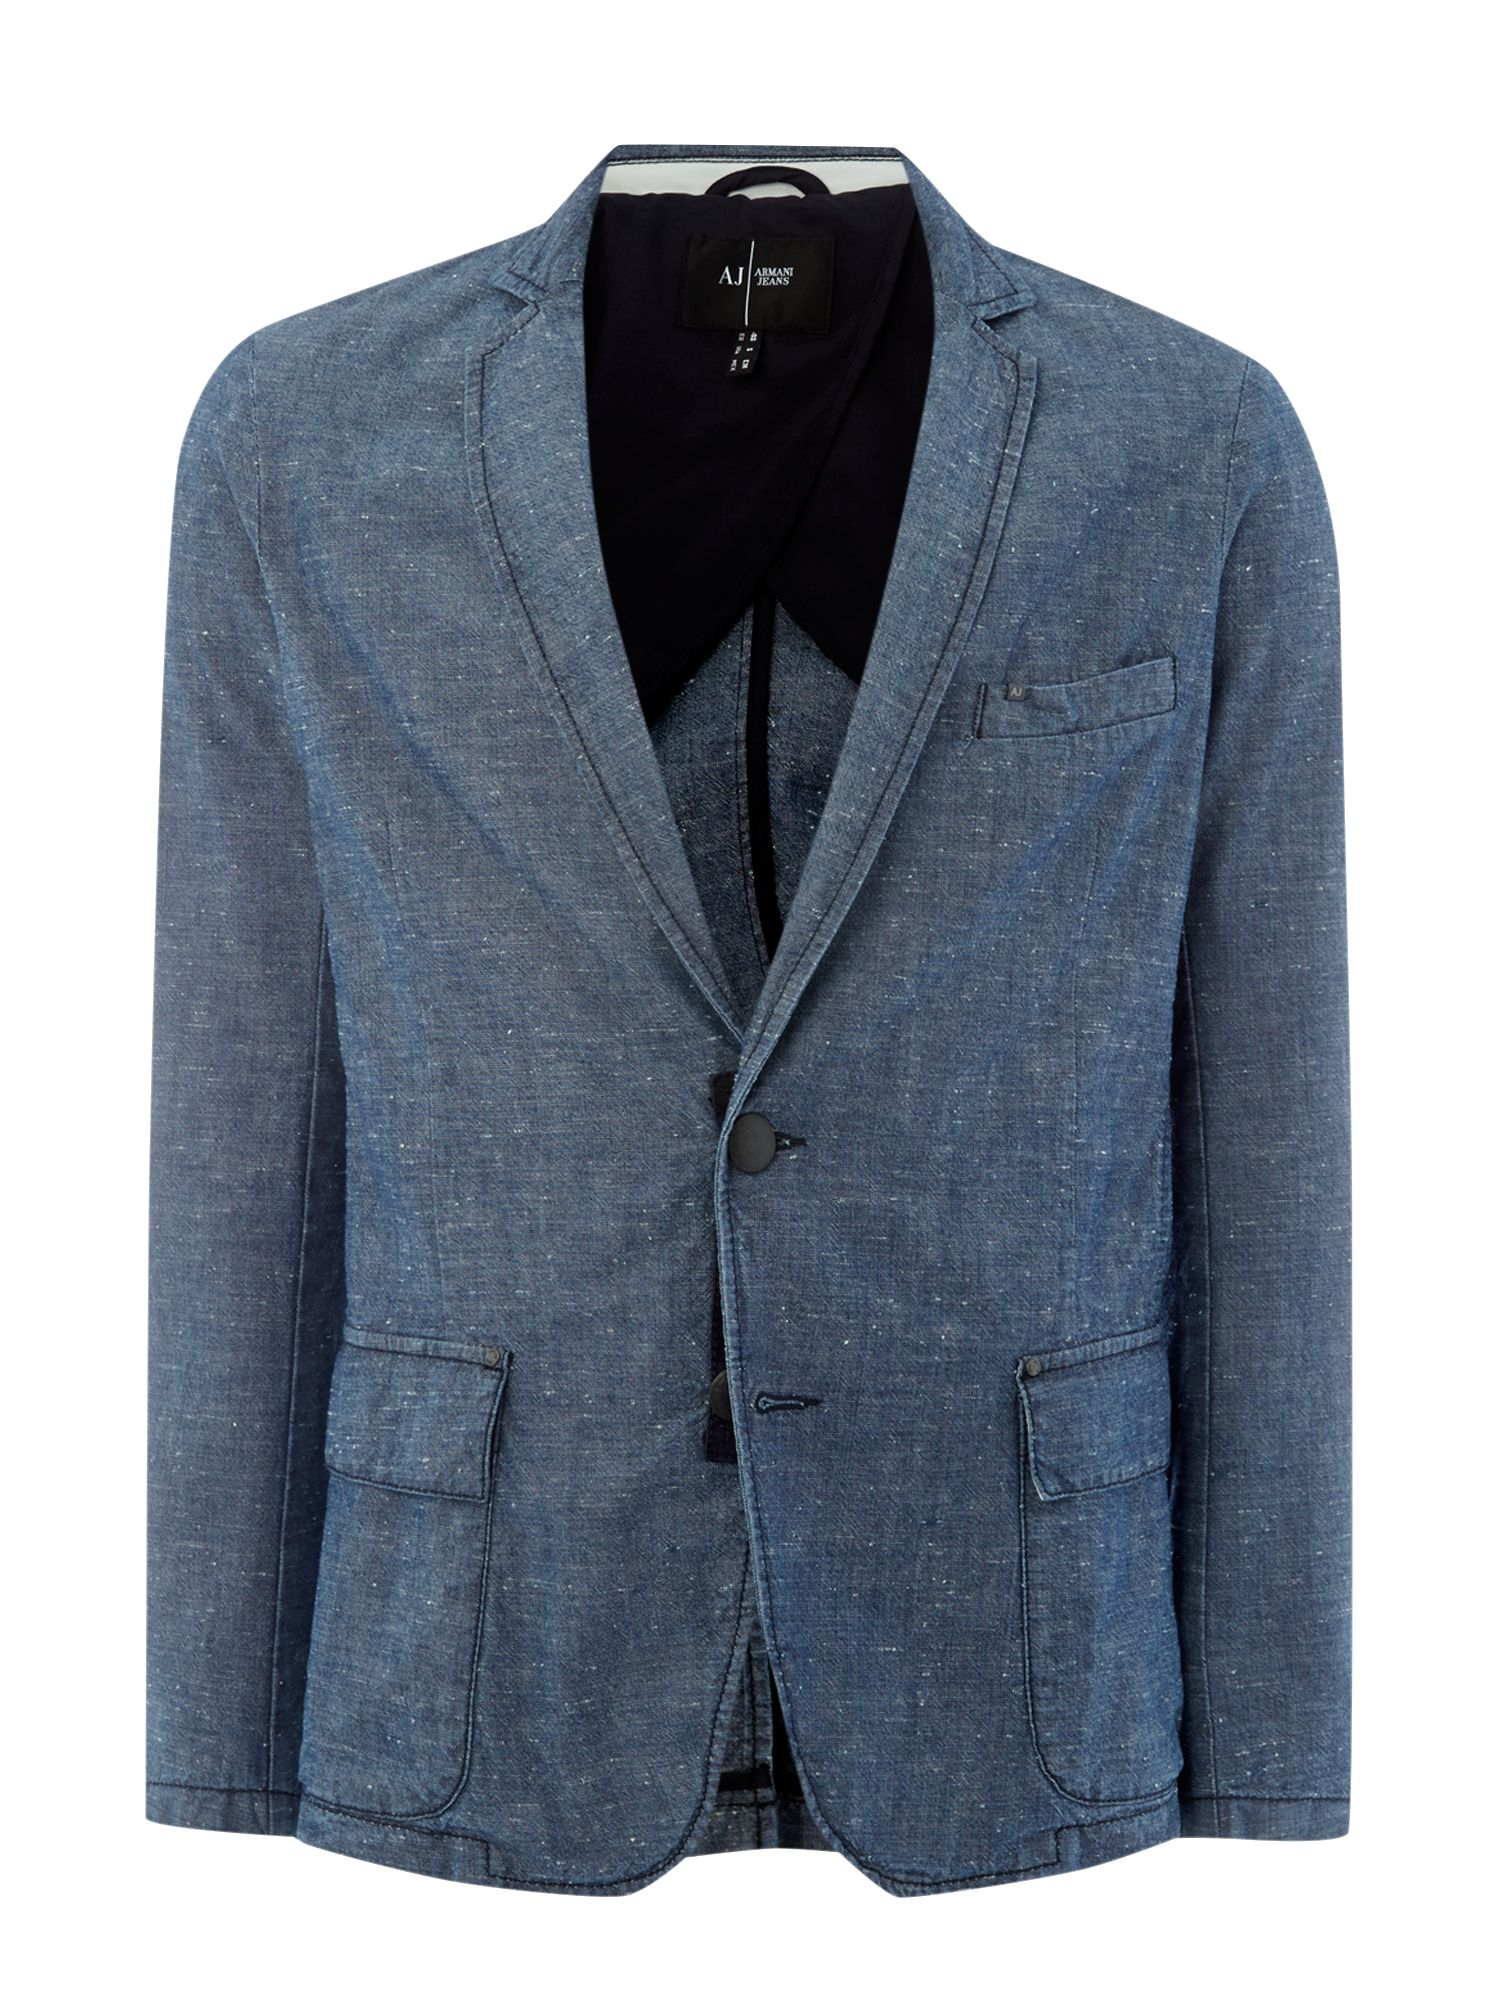 Nep denim blazer